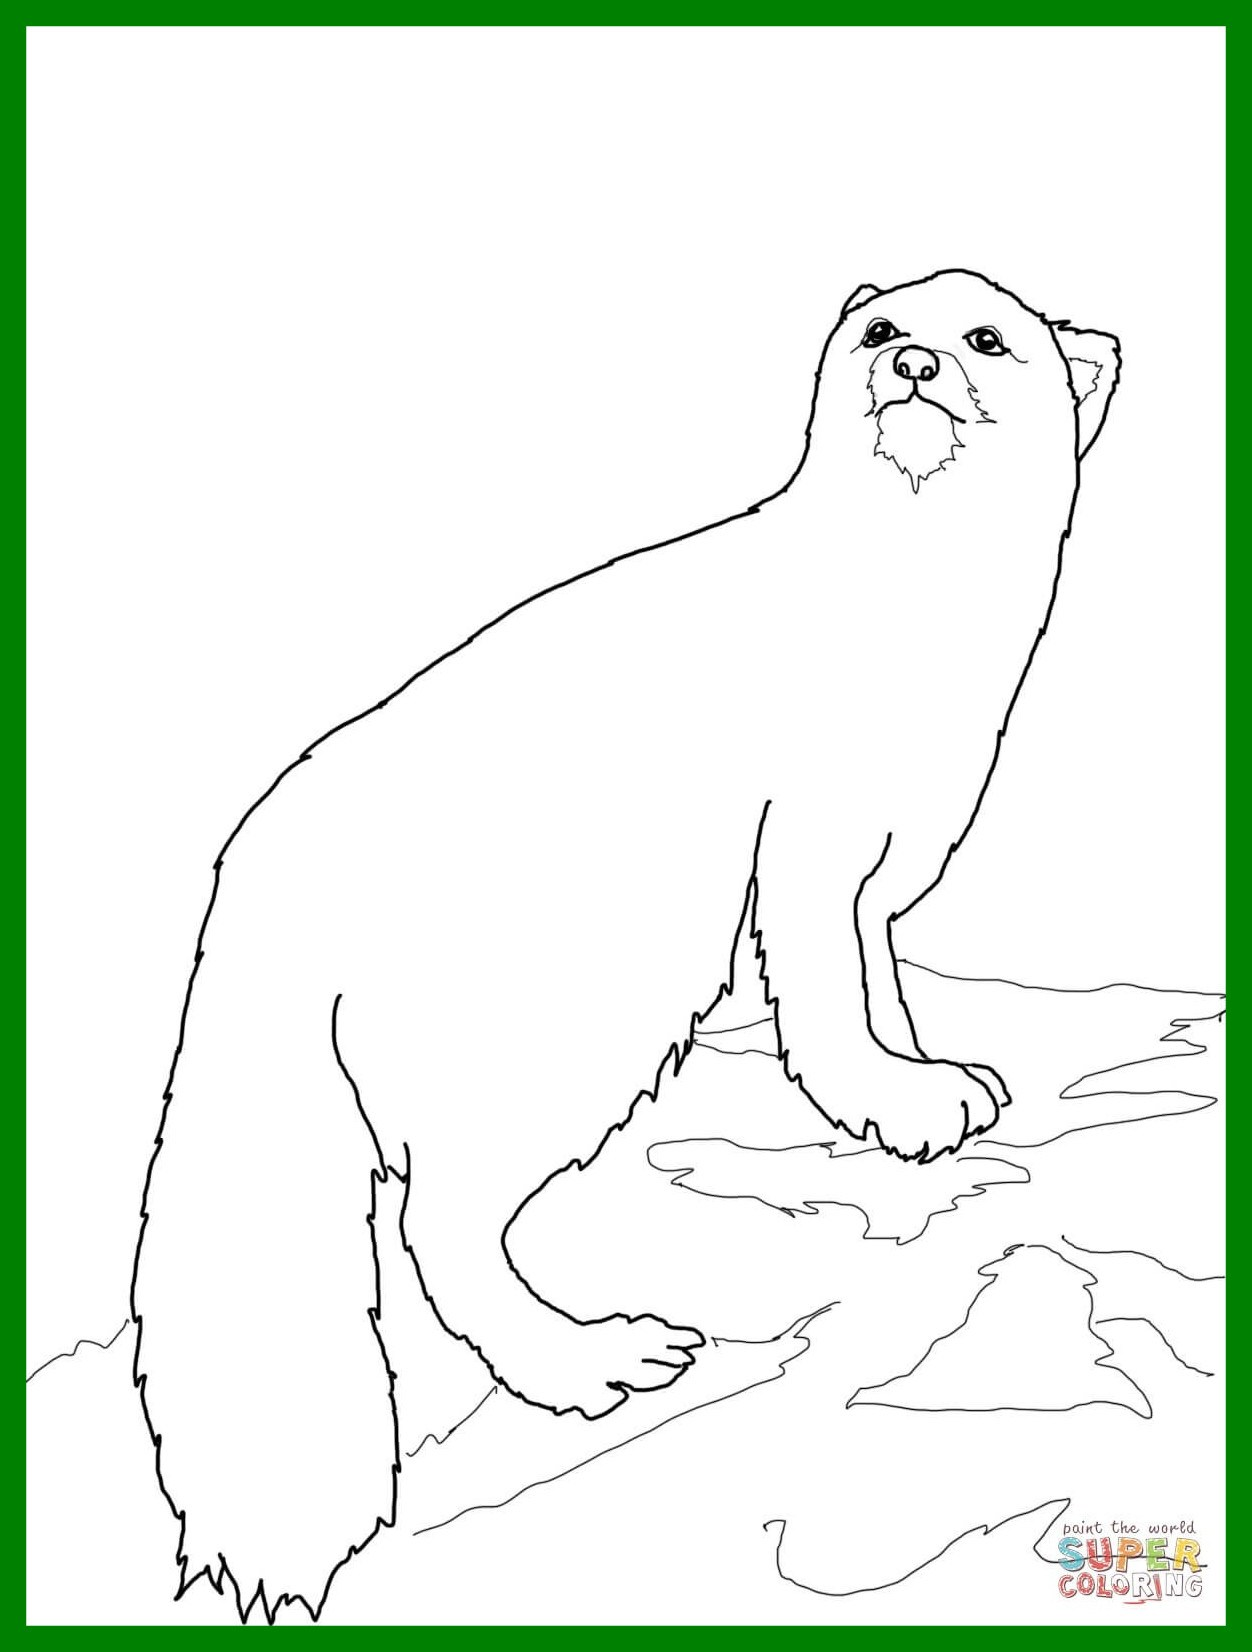 1252x1652 Marvelous Arctic Coloring Sheets To Print Books Pict For Animal